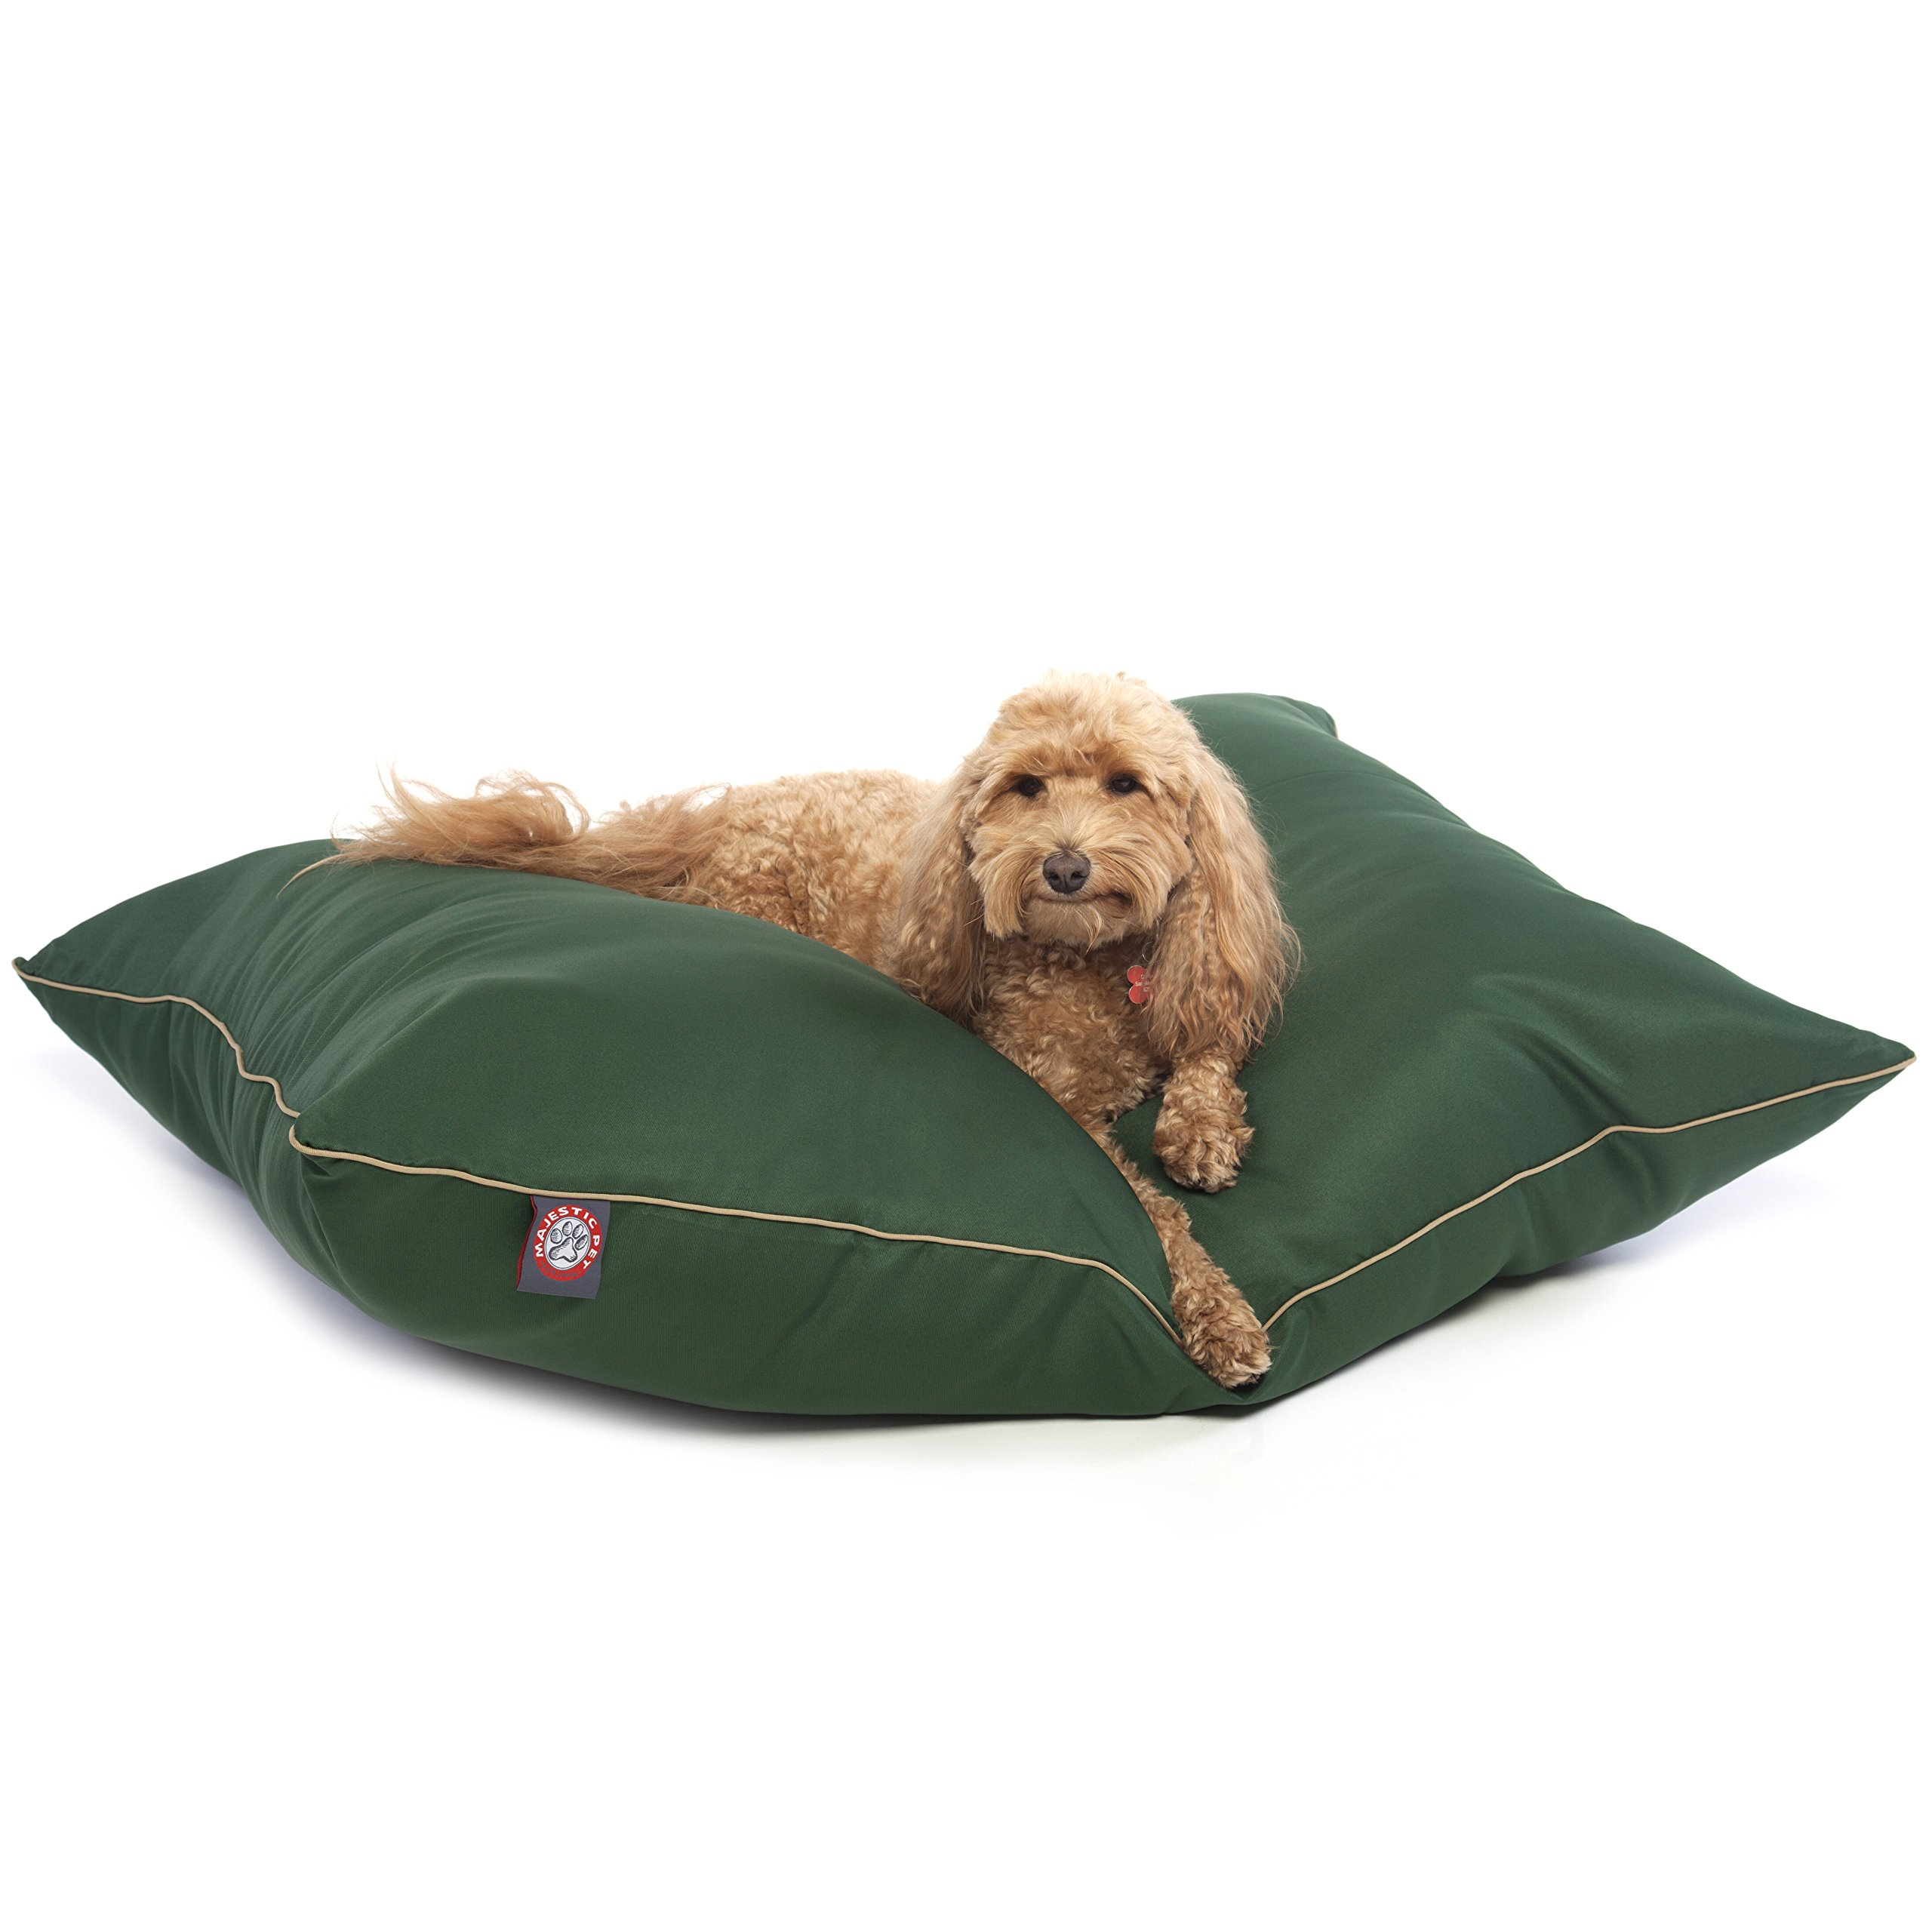 28x35 Green Super Value Pet Dog Bed By Majestic Pet Products Medium